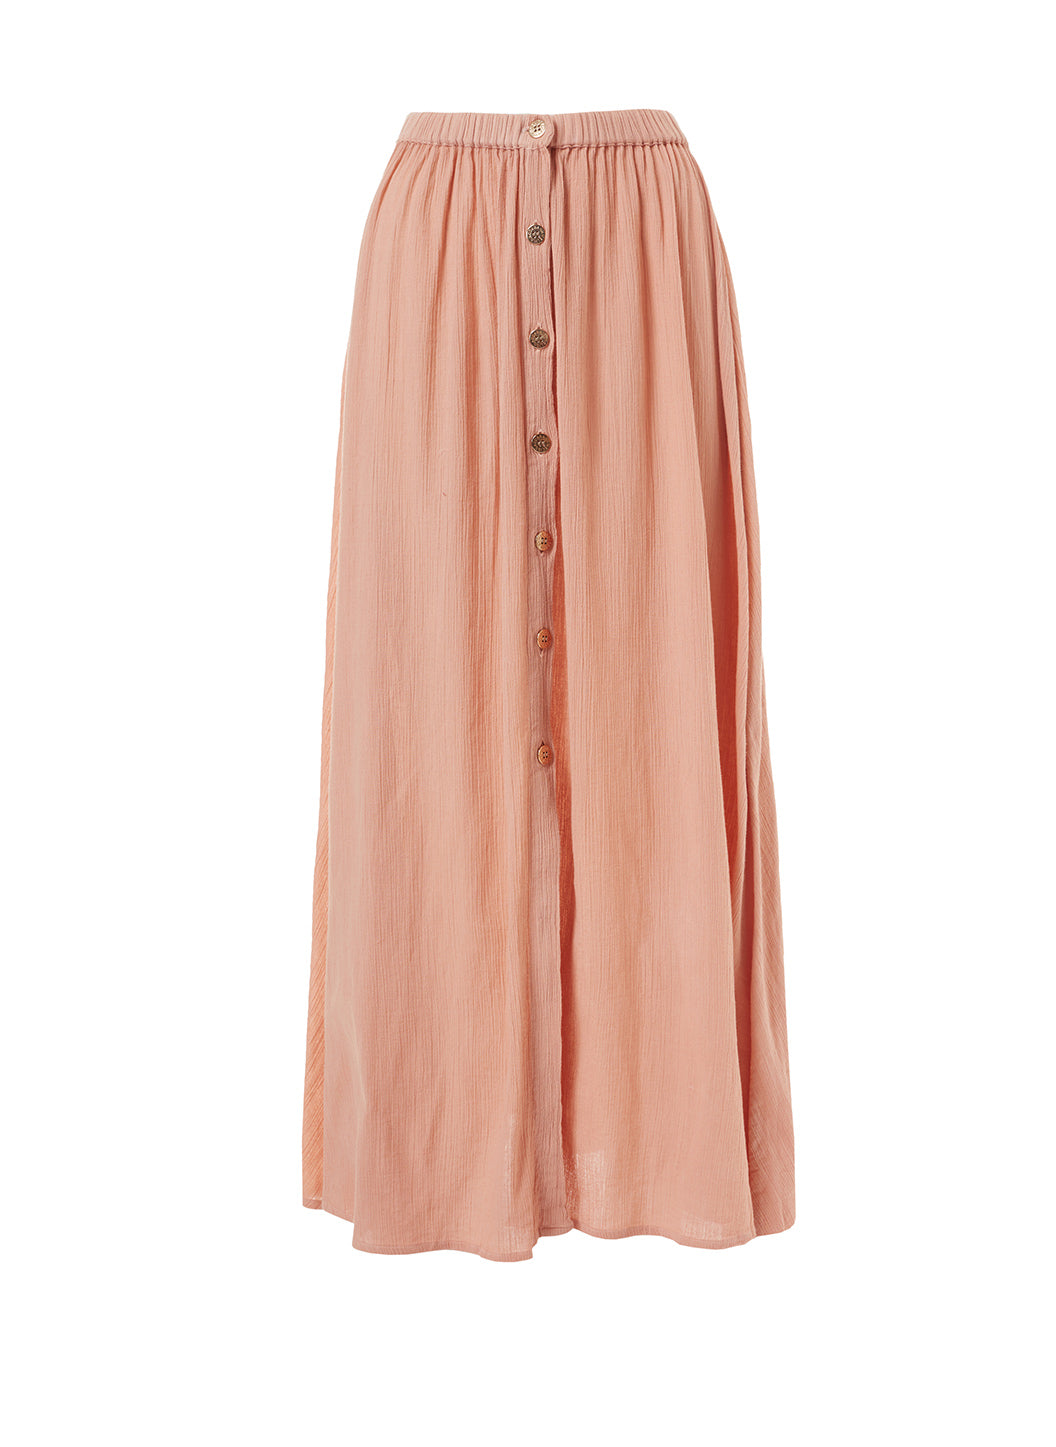 Dru Tan Button-Down Maxi Skirt - Melissa Odabash Beachwear